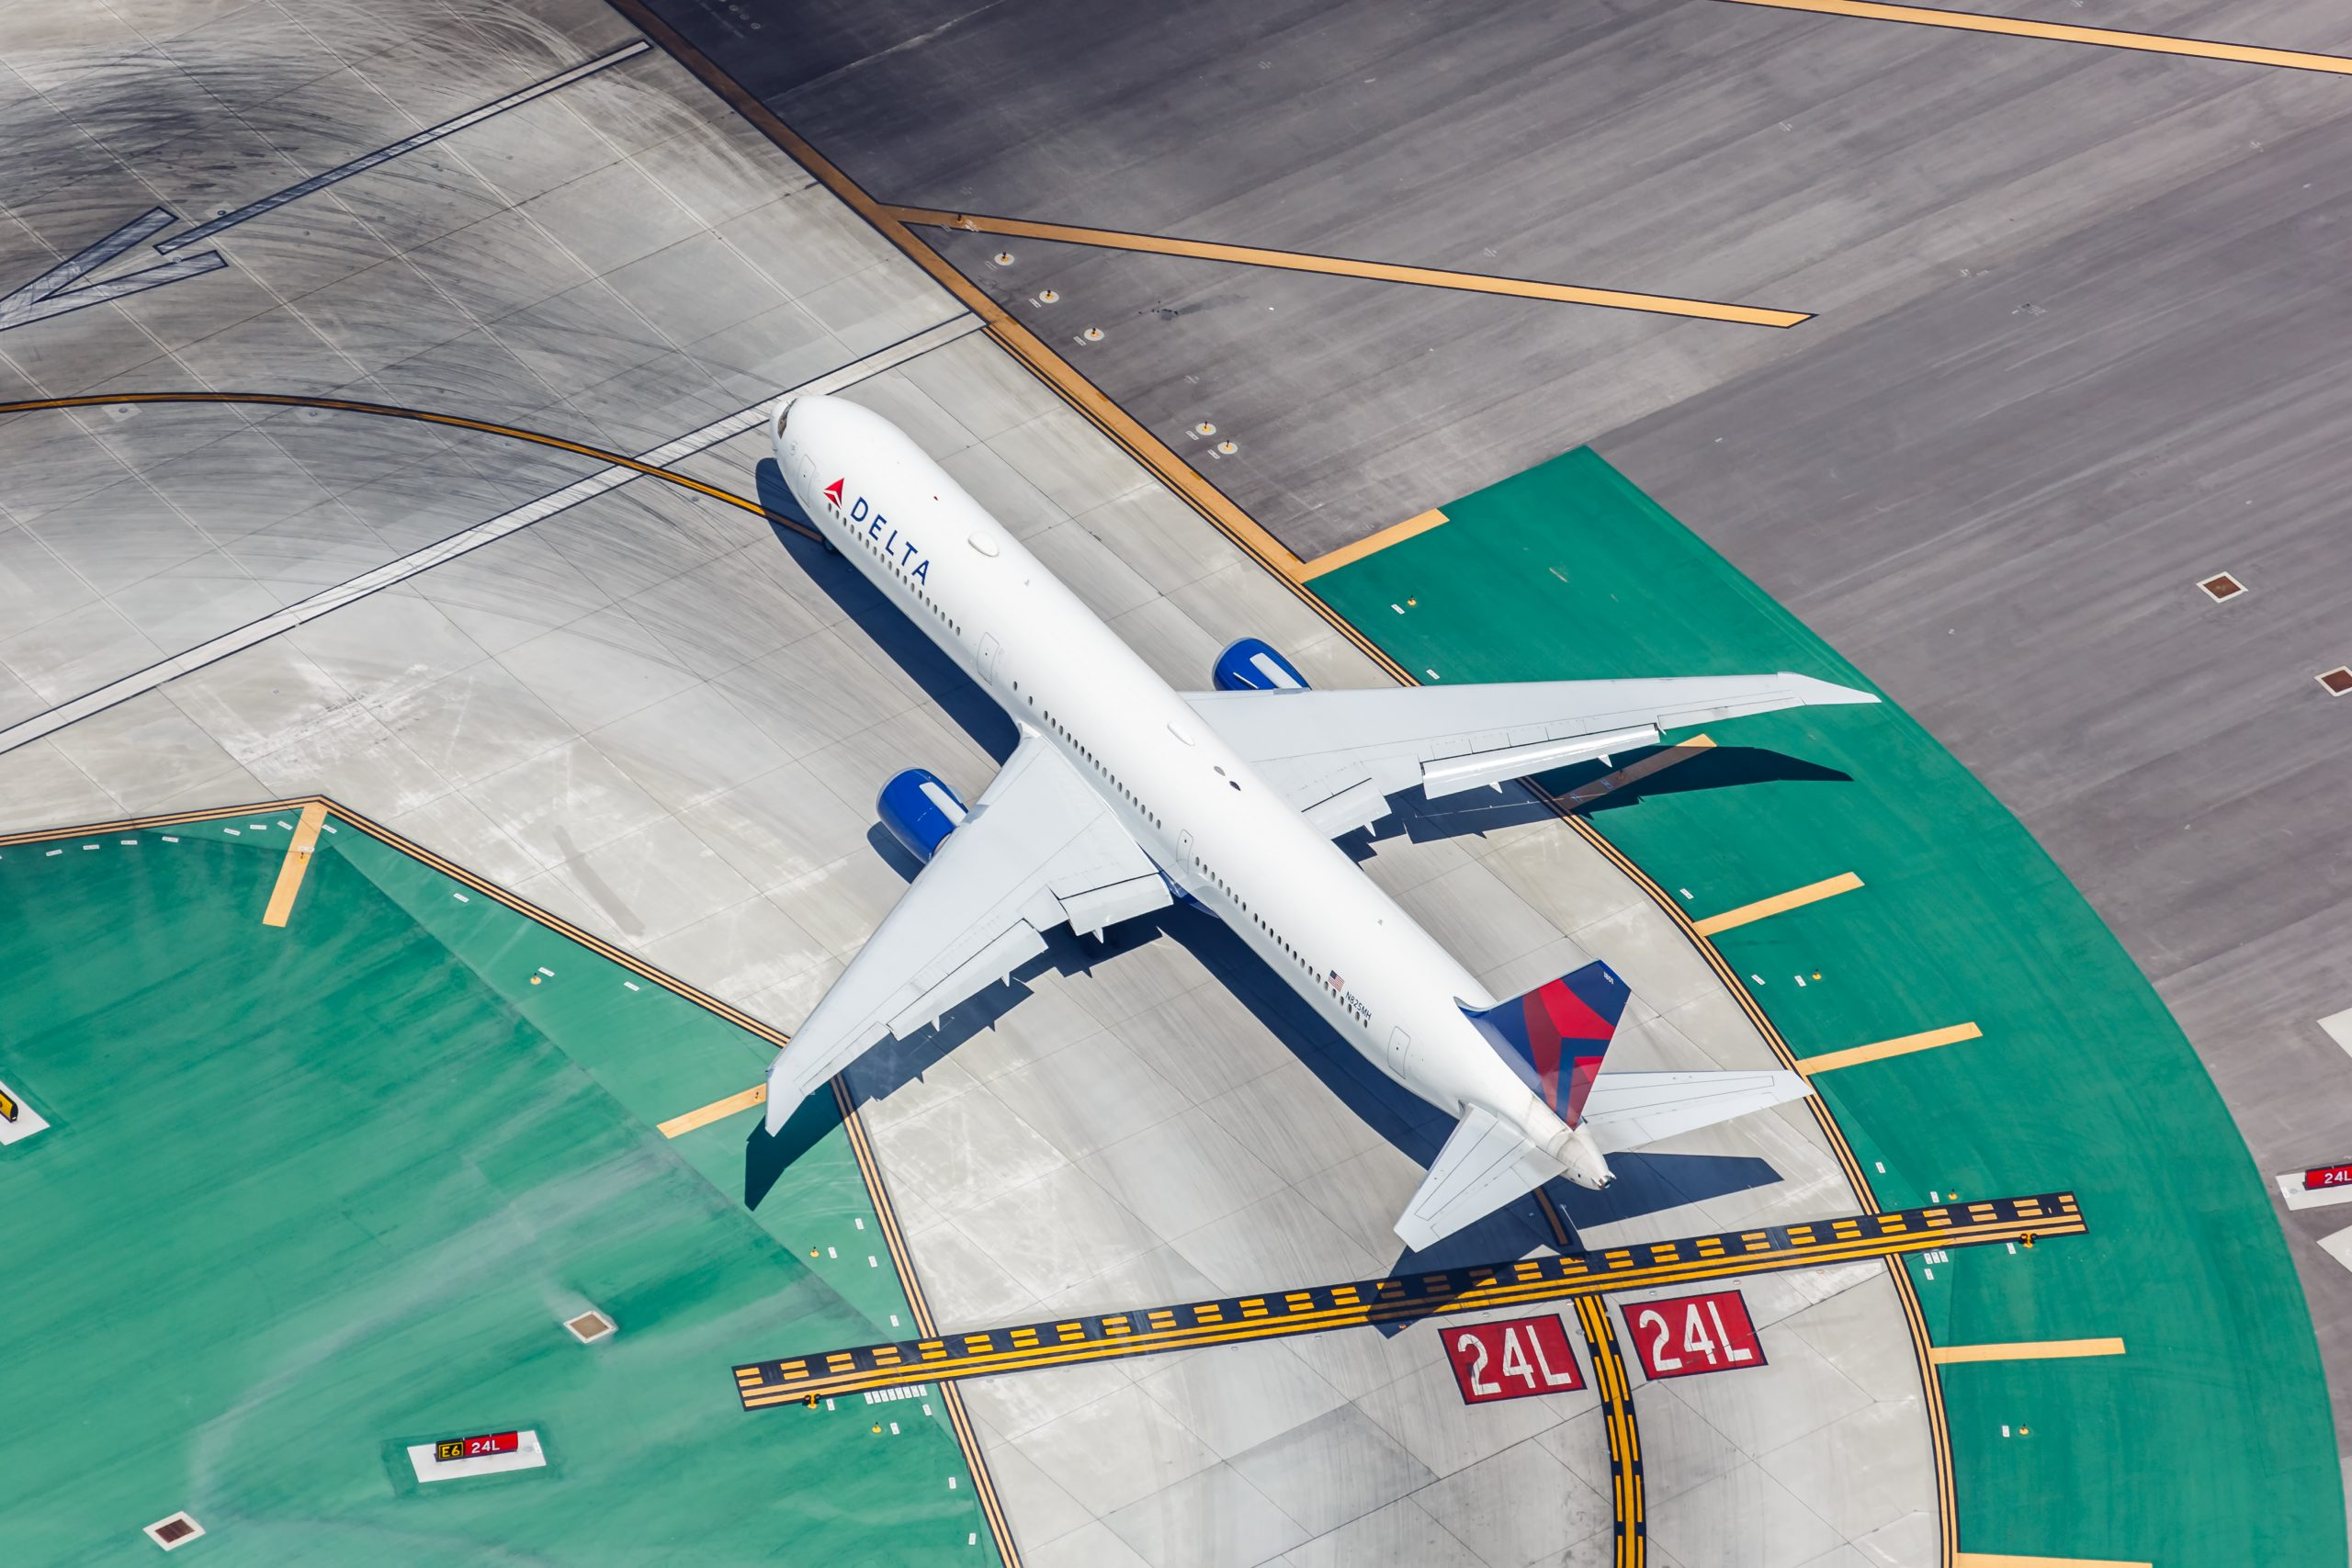 Delta Air Lines Would Like to Share its Antimasker 'No-Fly List' With Other Carriers